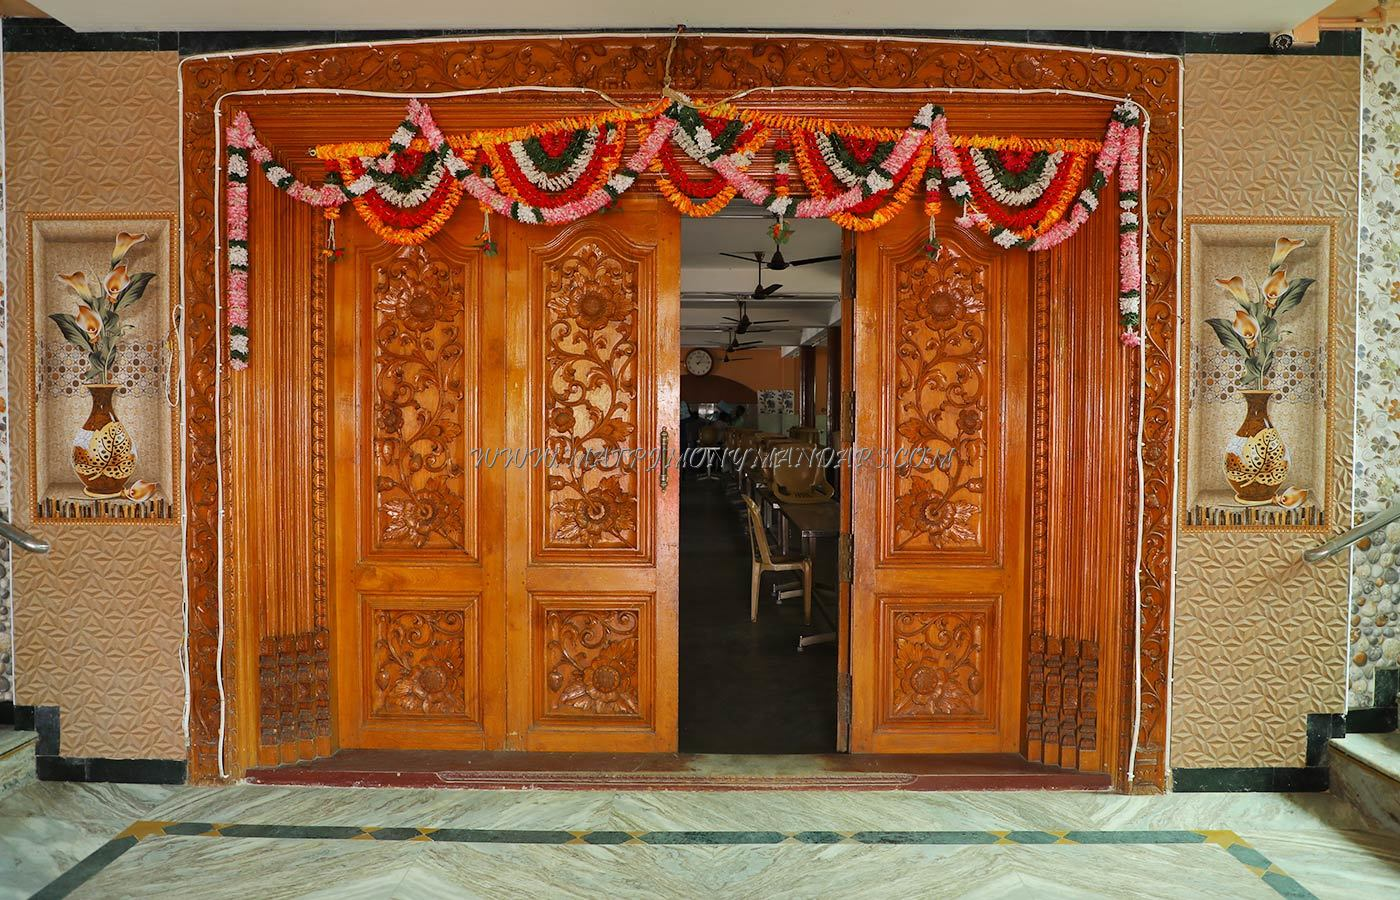 Find the availability of the R Samikkannu Dhanammal Thirumana Mahal in Ariyankuppam, Pondicherry and avail special offers